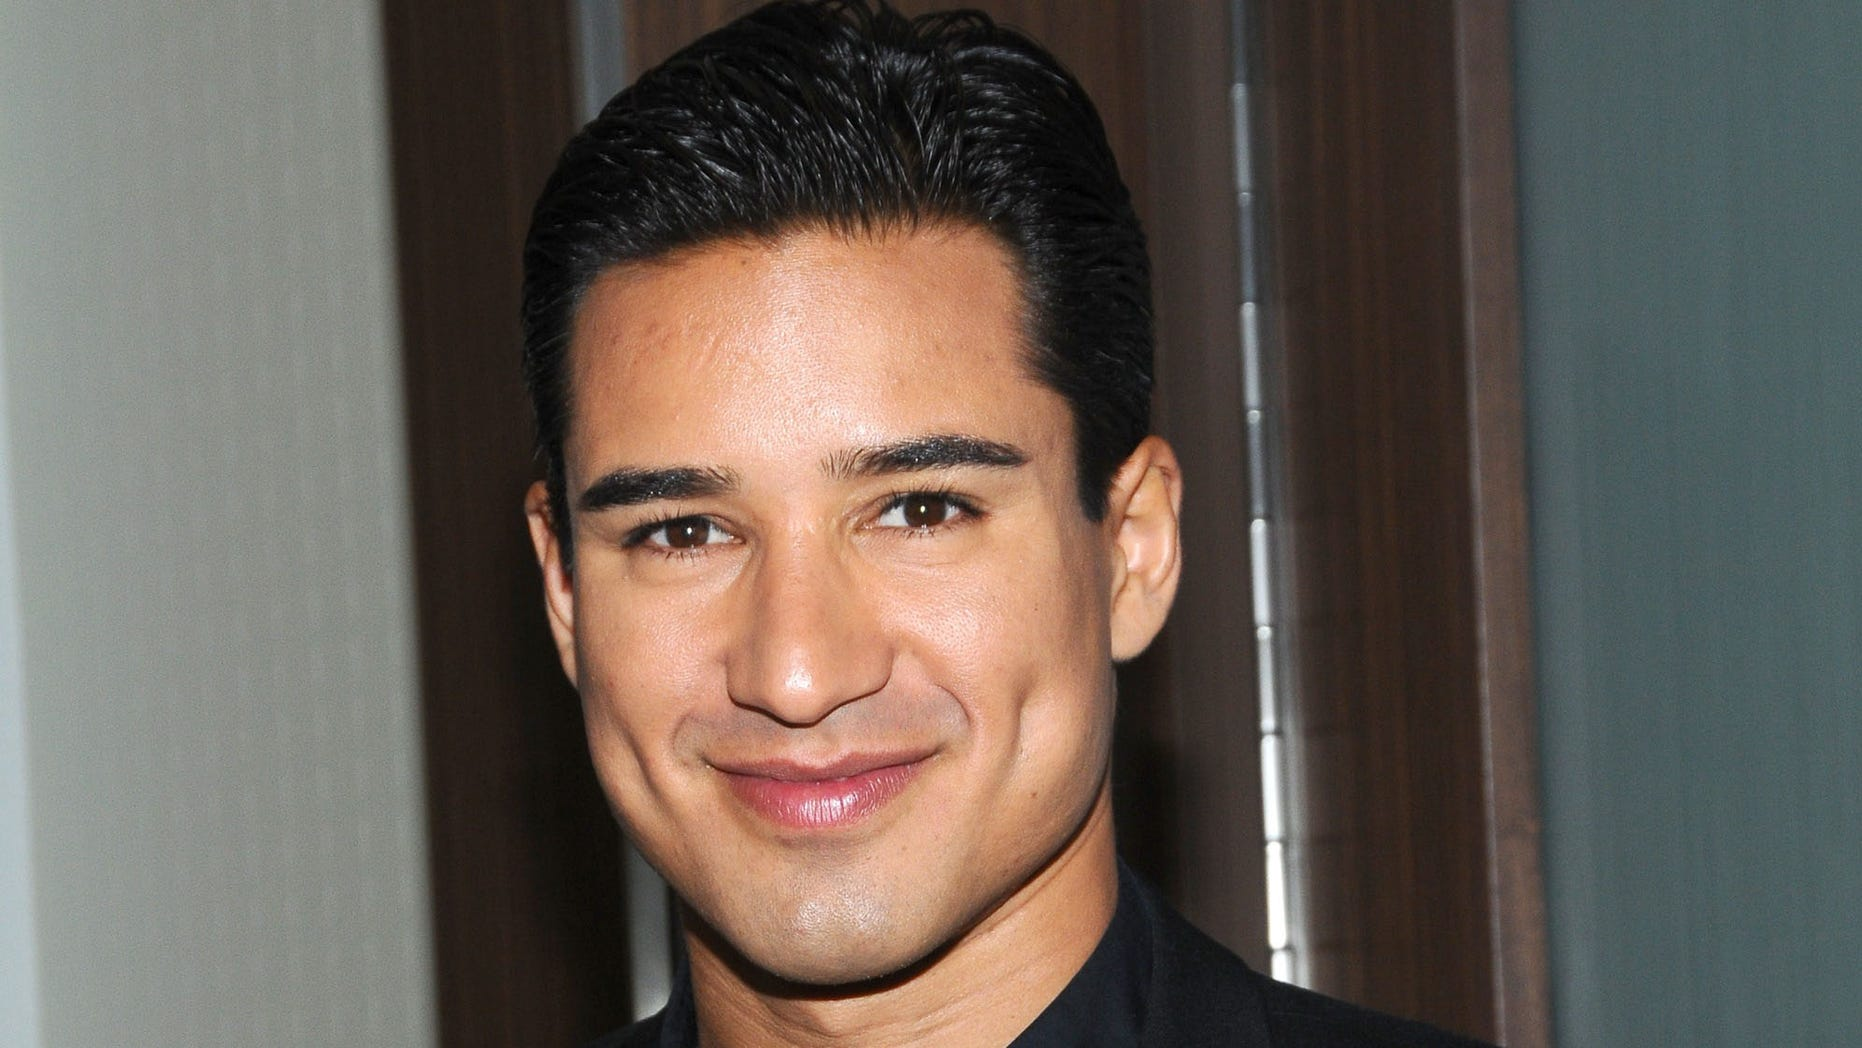 SAN FRANCISCO, CA - JUNE 02: Mario Lopez arrives at the 23rd Annual GLAAD Media Awards at San Francisco Marriott Marquis on June 2, 2012 in San Francisco, California. (Photo by Araya Diaz/Getty Images for GLAAD)